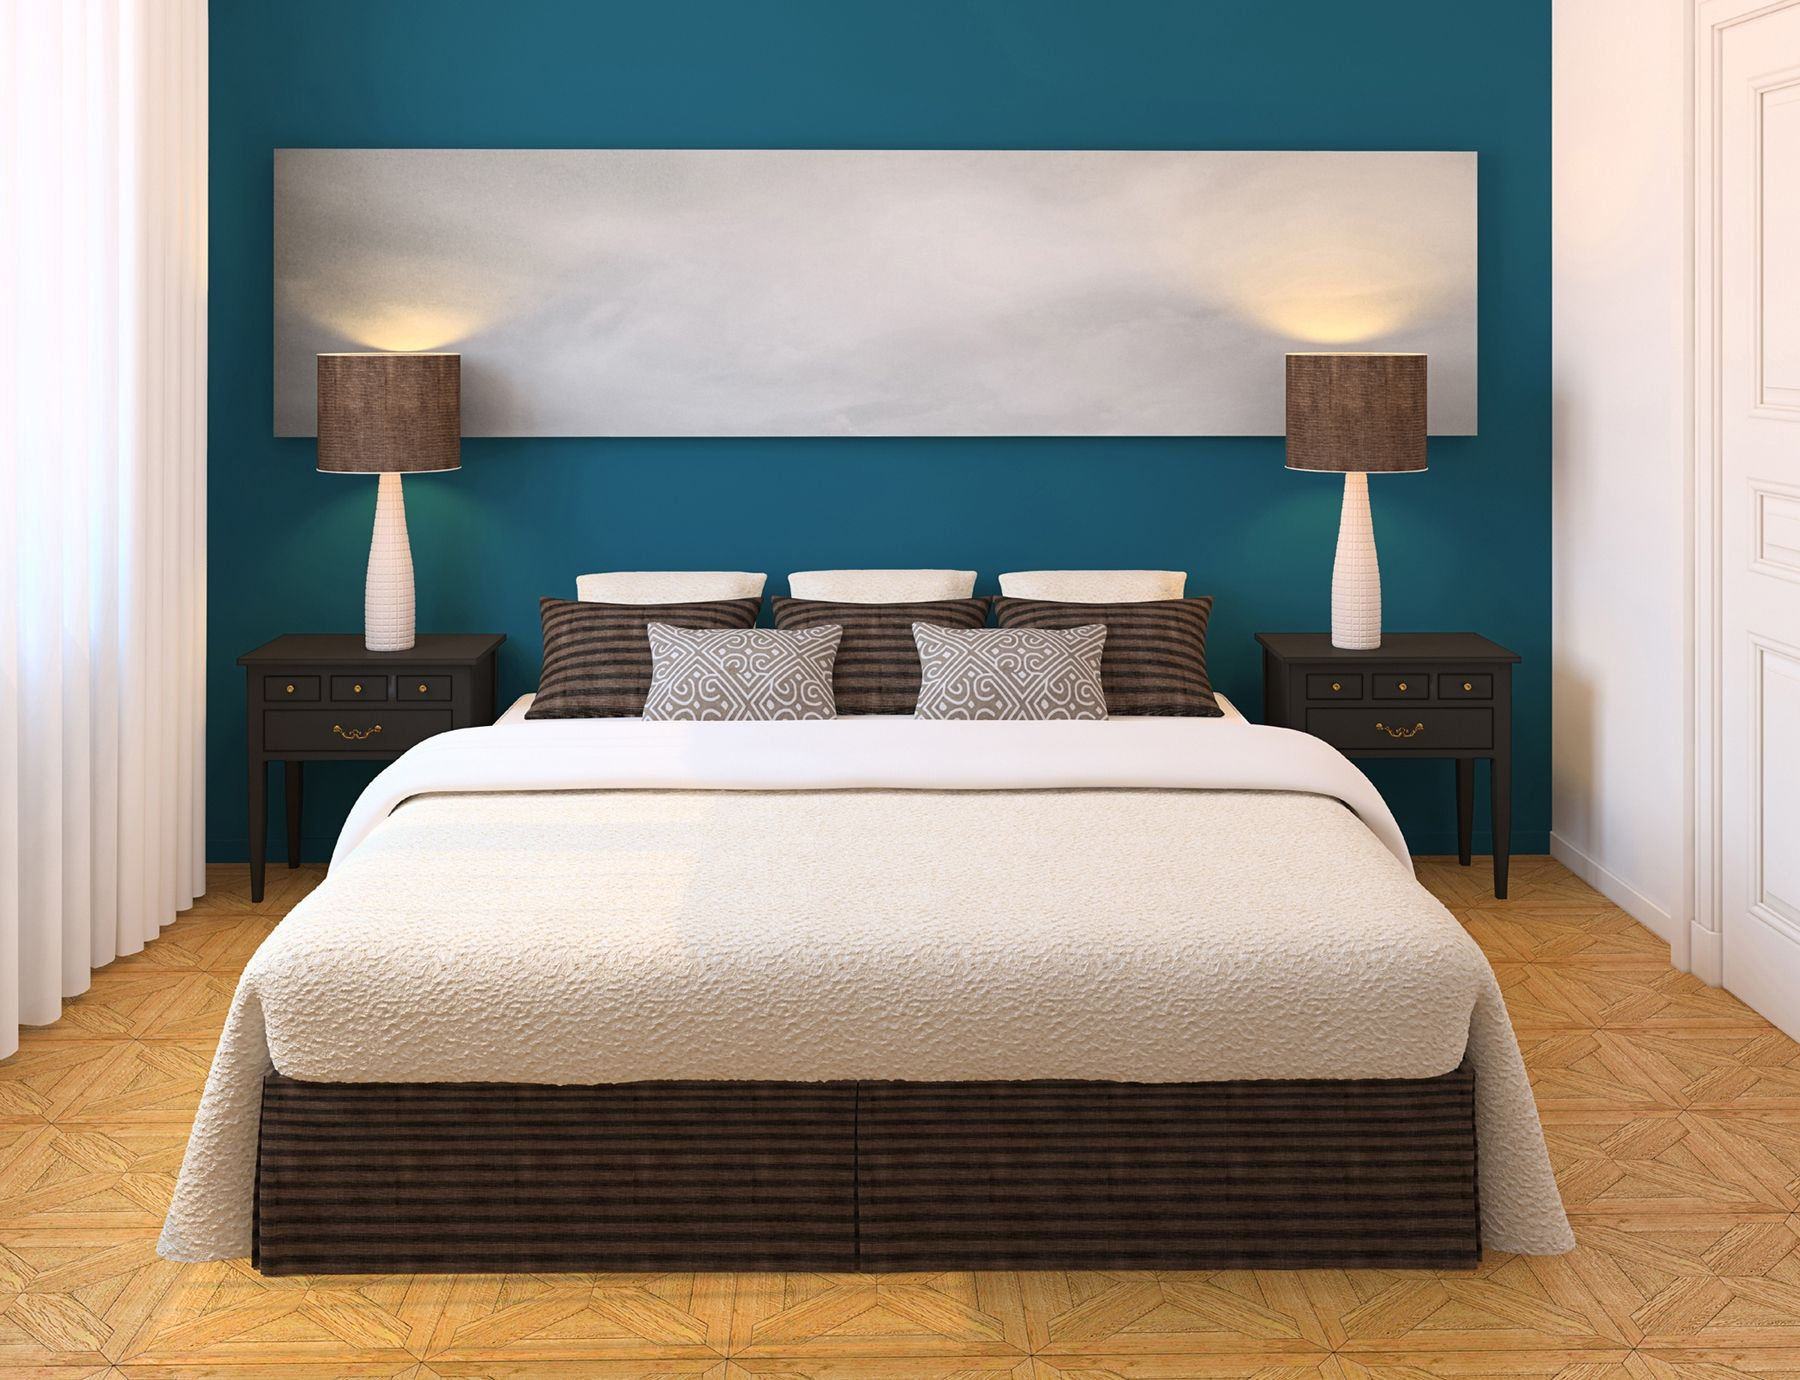 Best Blue Paint Colors For Bedroom: Bedroom Bedroom Best Paint Color Blue White Wall King Size